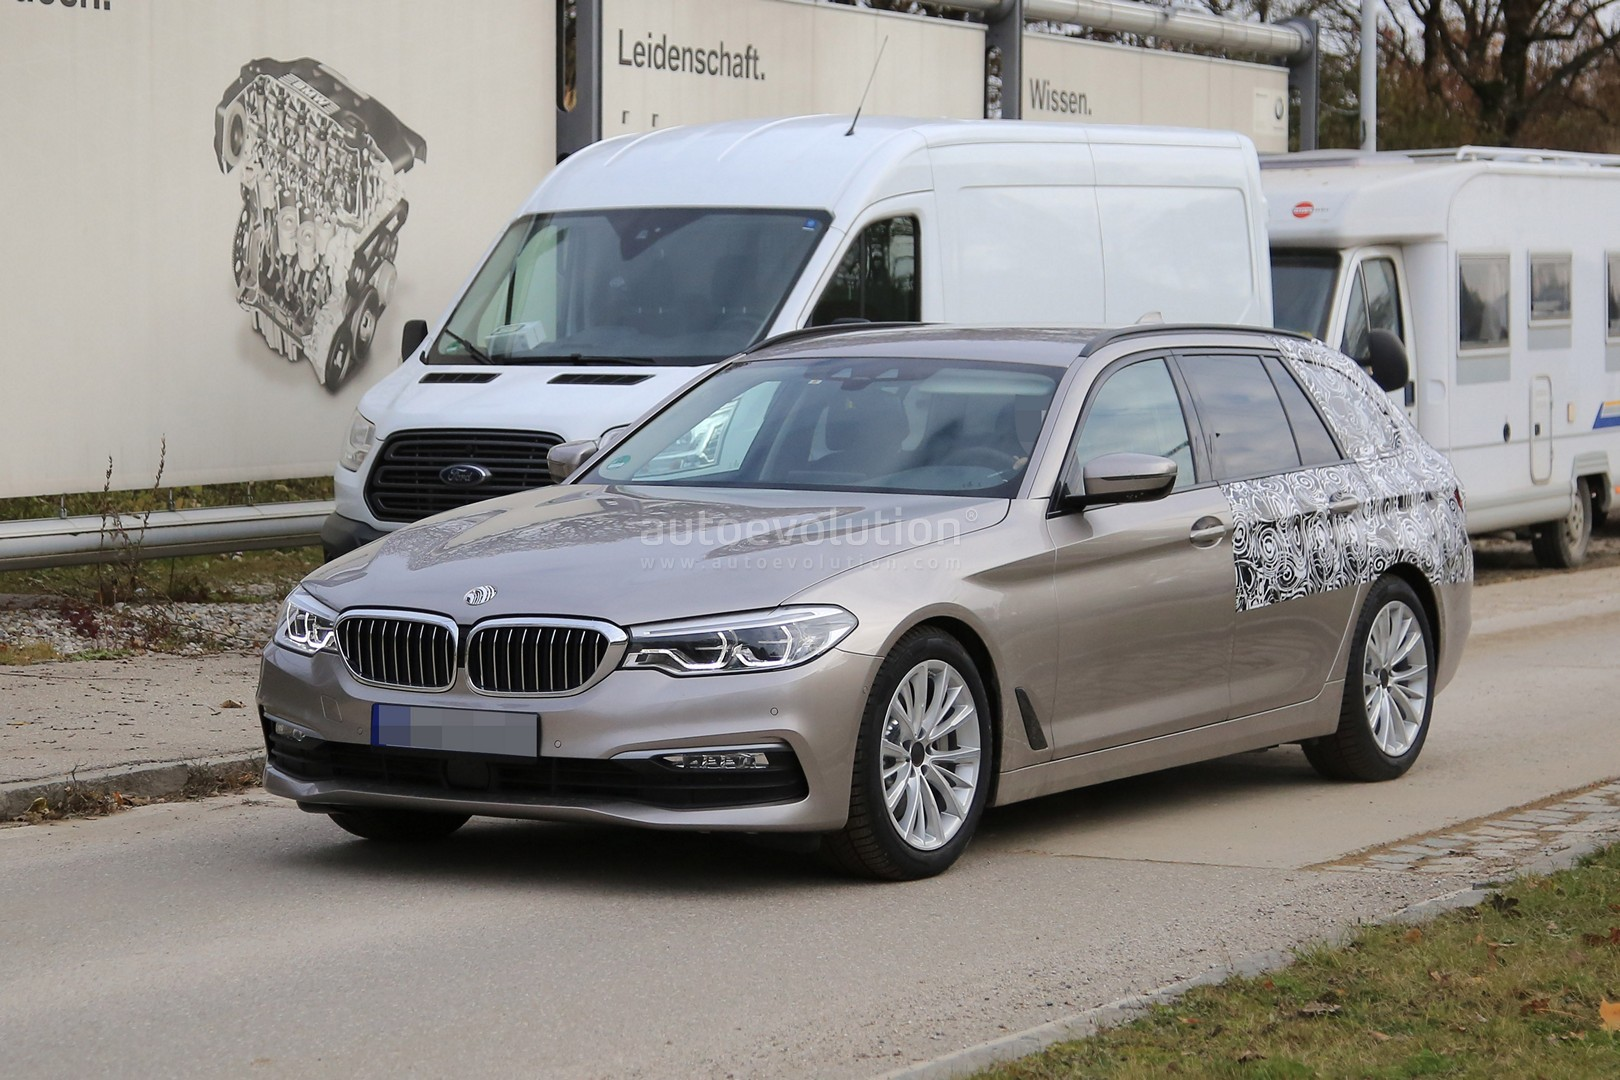 2016 - [BMW] Série 5 Berline & Touring [G30/G31] - Page 26 2017-bmw-5-series-touring-sheds-camo-likely-to-debut-in-geneva_2